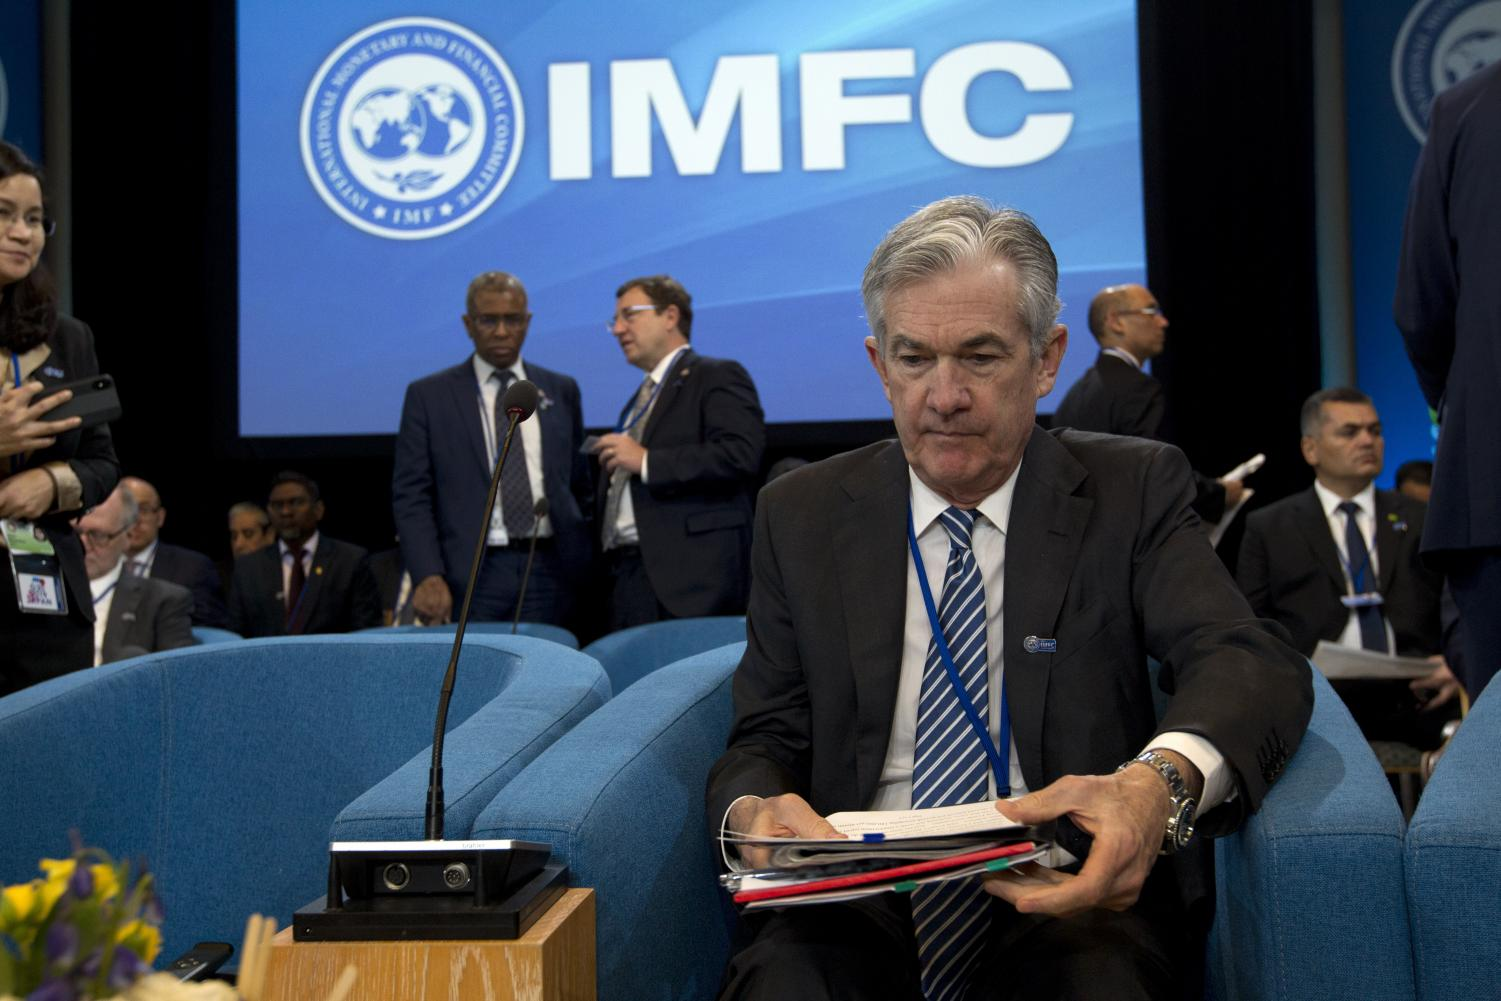 Federal Reserve Board Chair Jerome Powell during the International Monetary and Financial Committee meeting, at the World Bank/IMF Spring Meetings in Washington, Saturday, April 13, 2019.